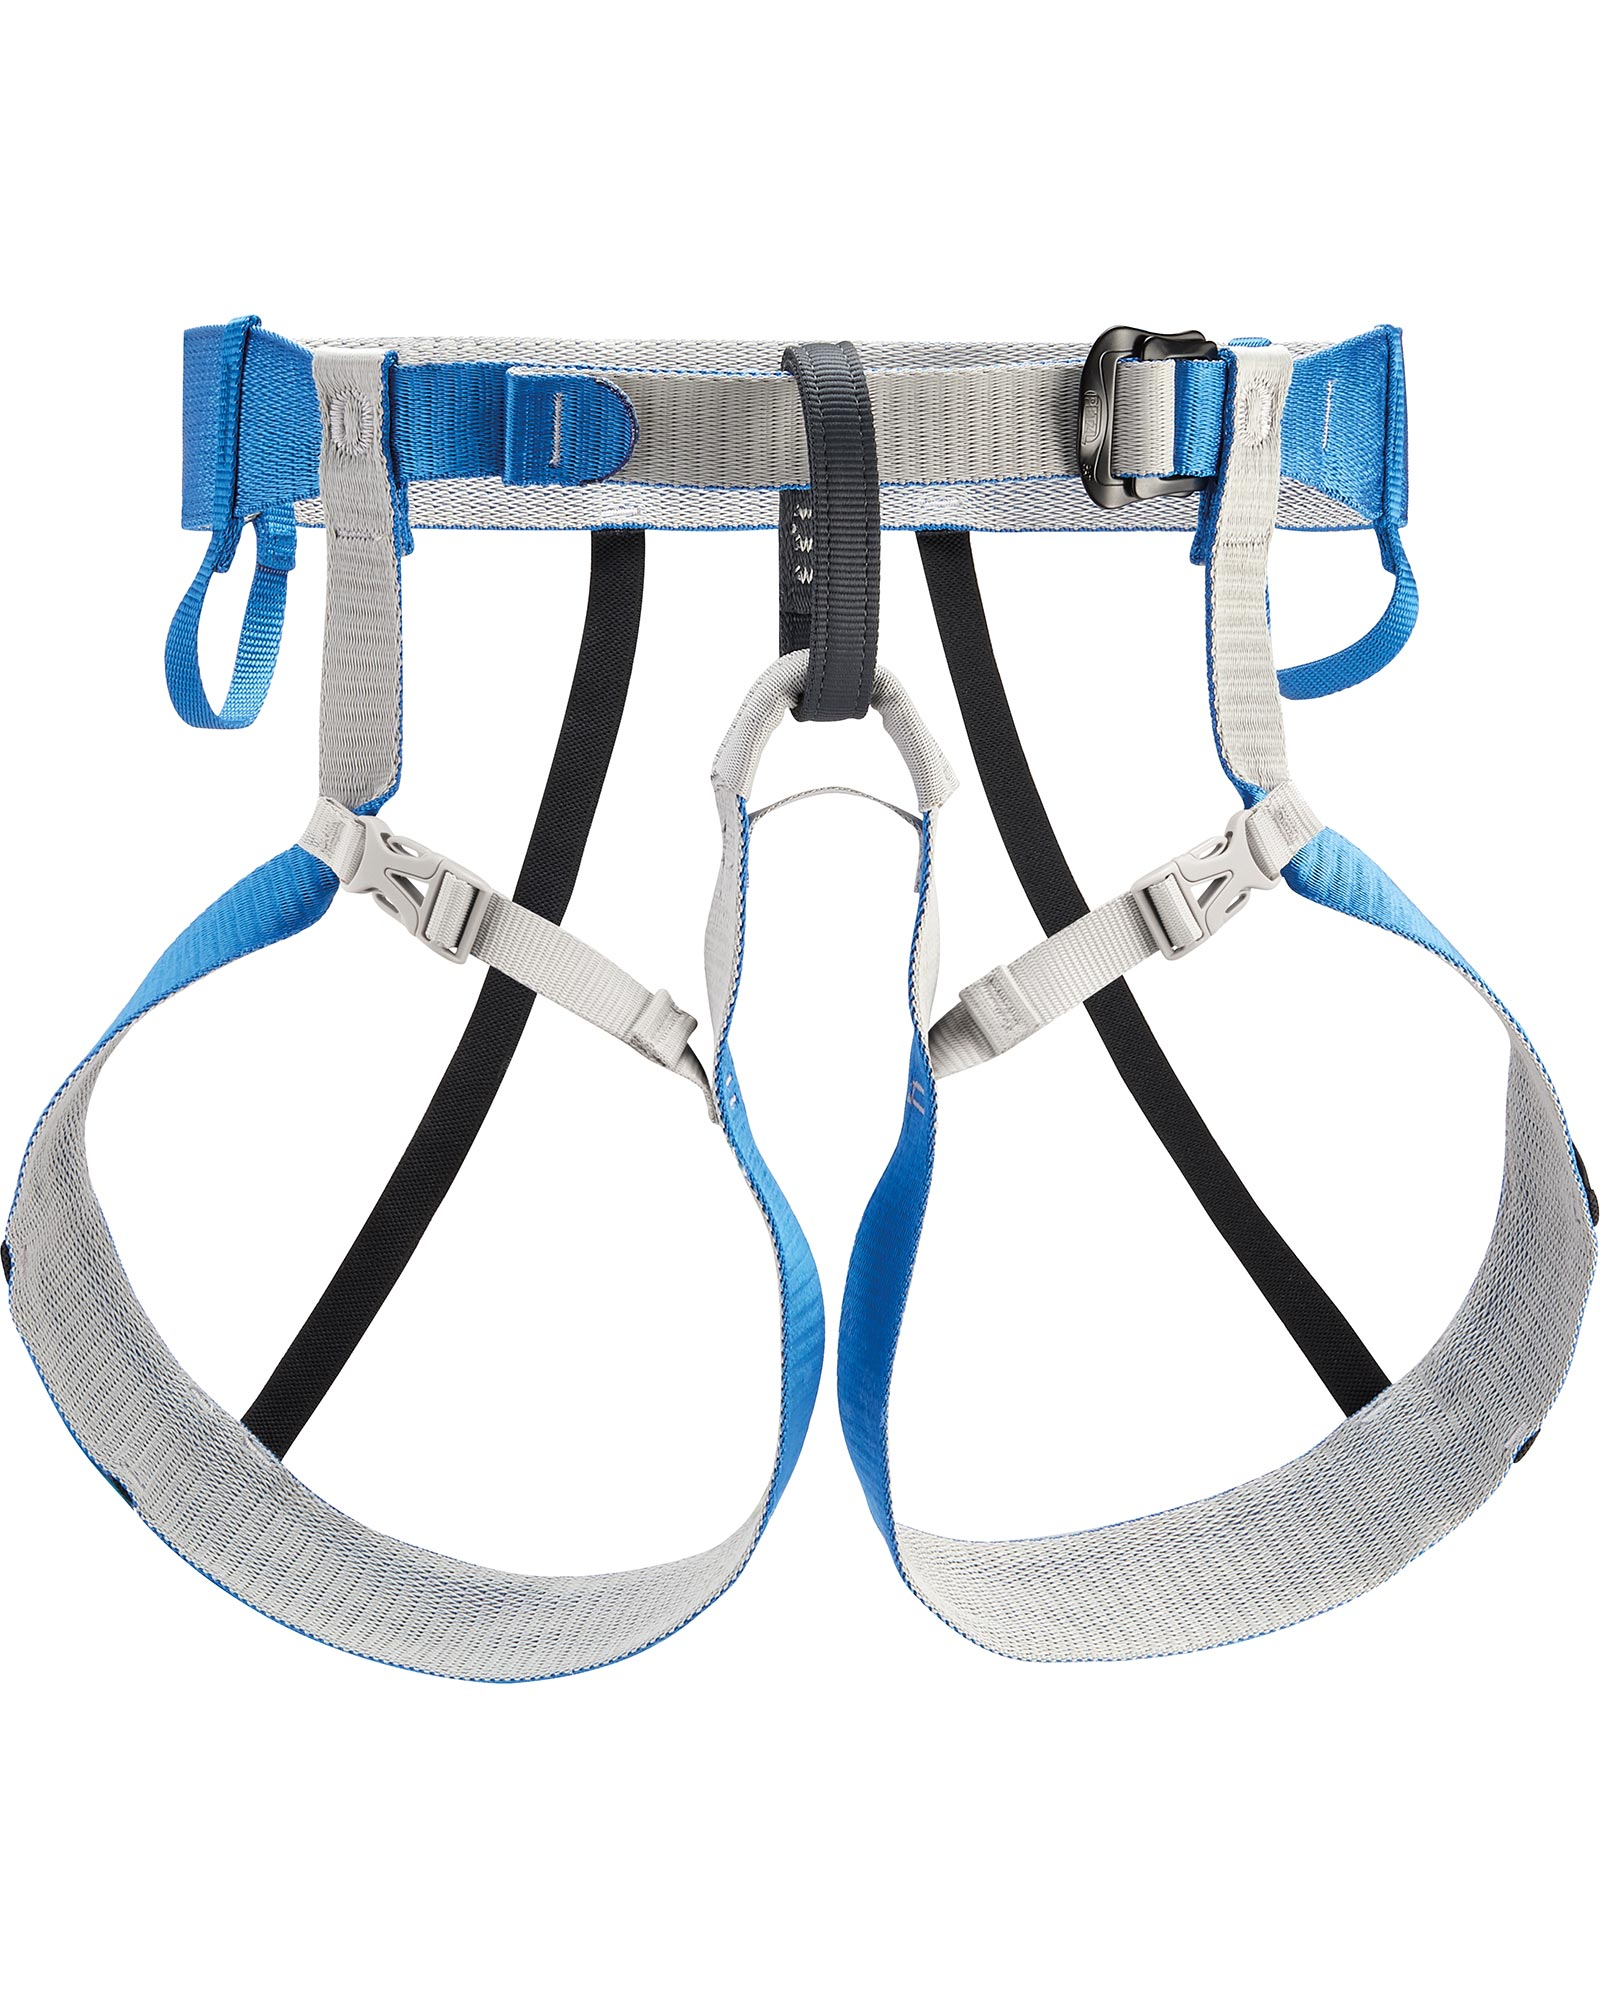 Petzl Tour Climbing Harness 0